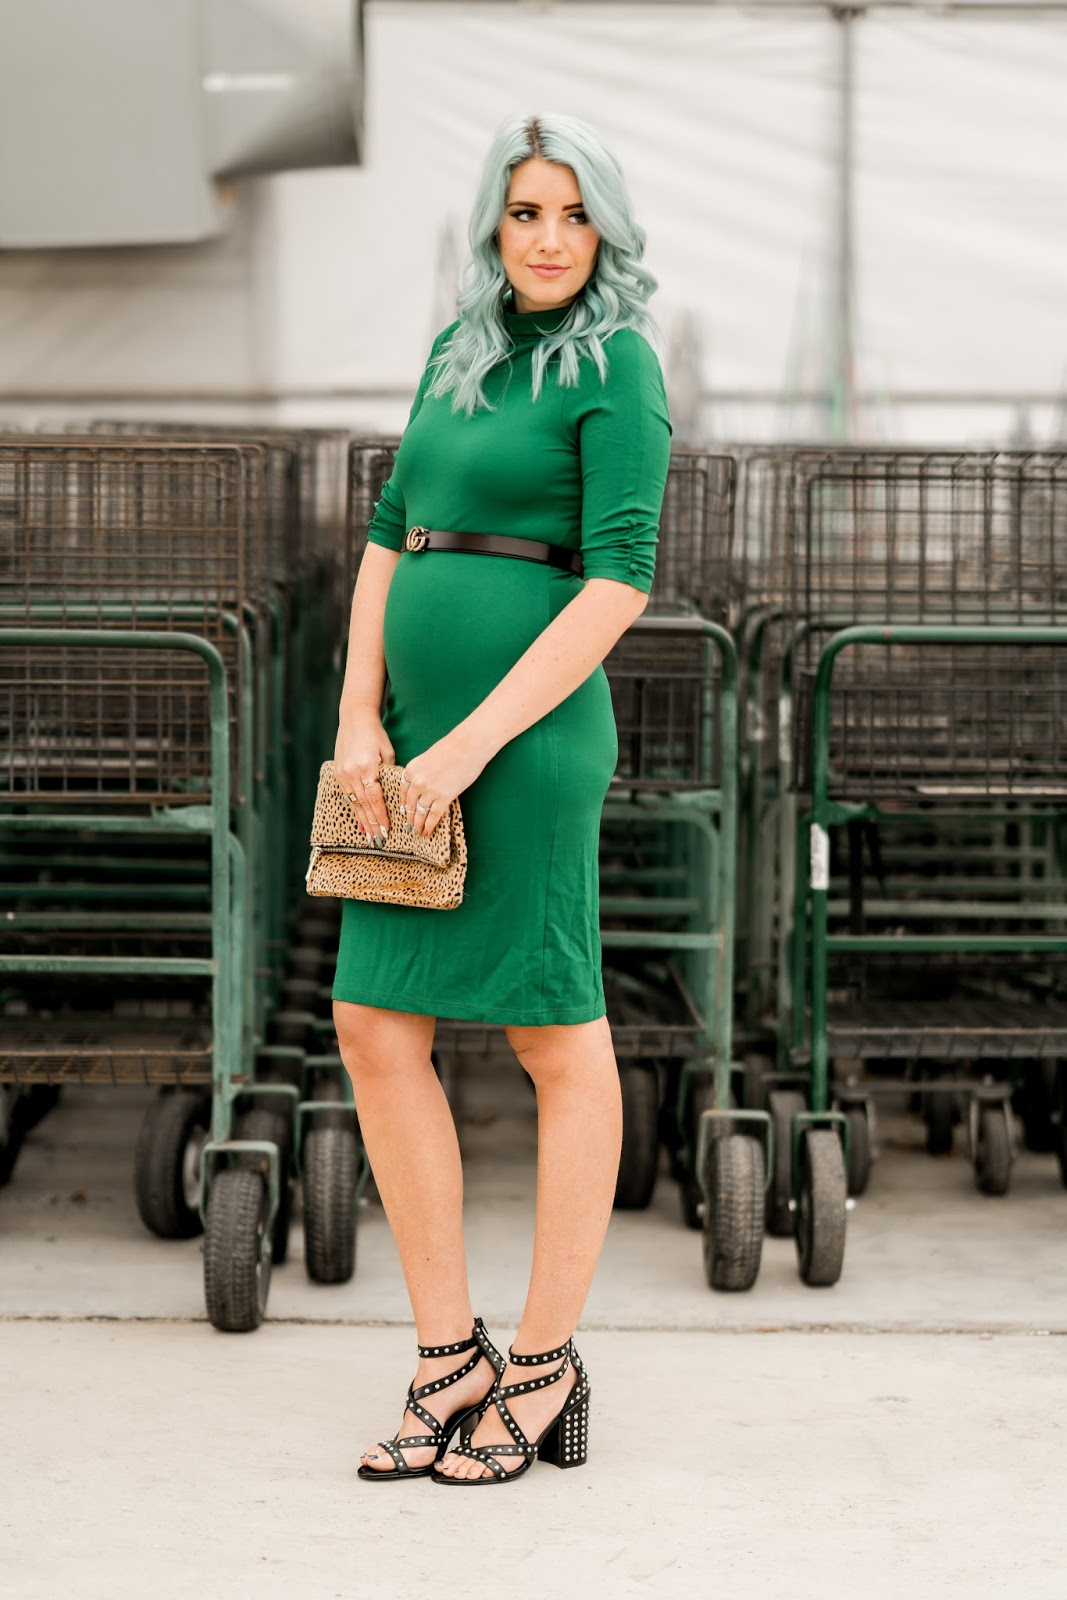 Pregnant Outfit, Maternity Dress, Maternity Style